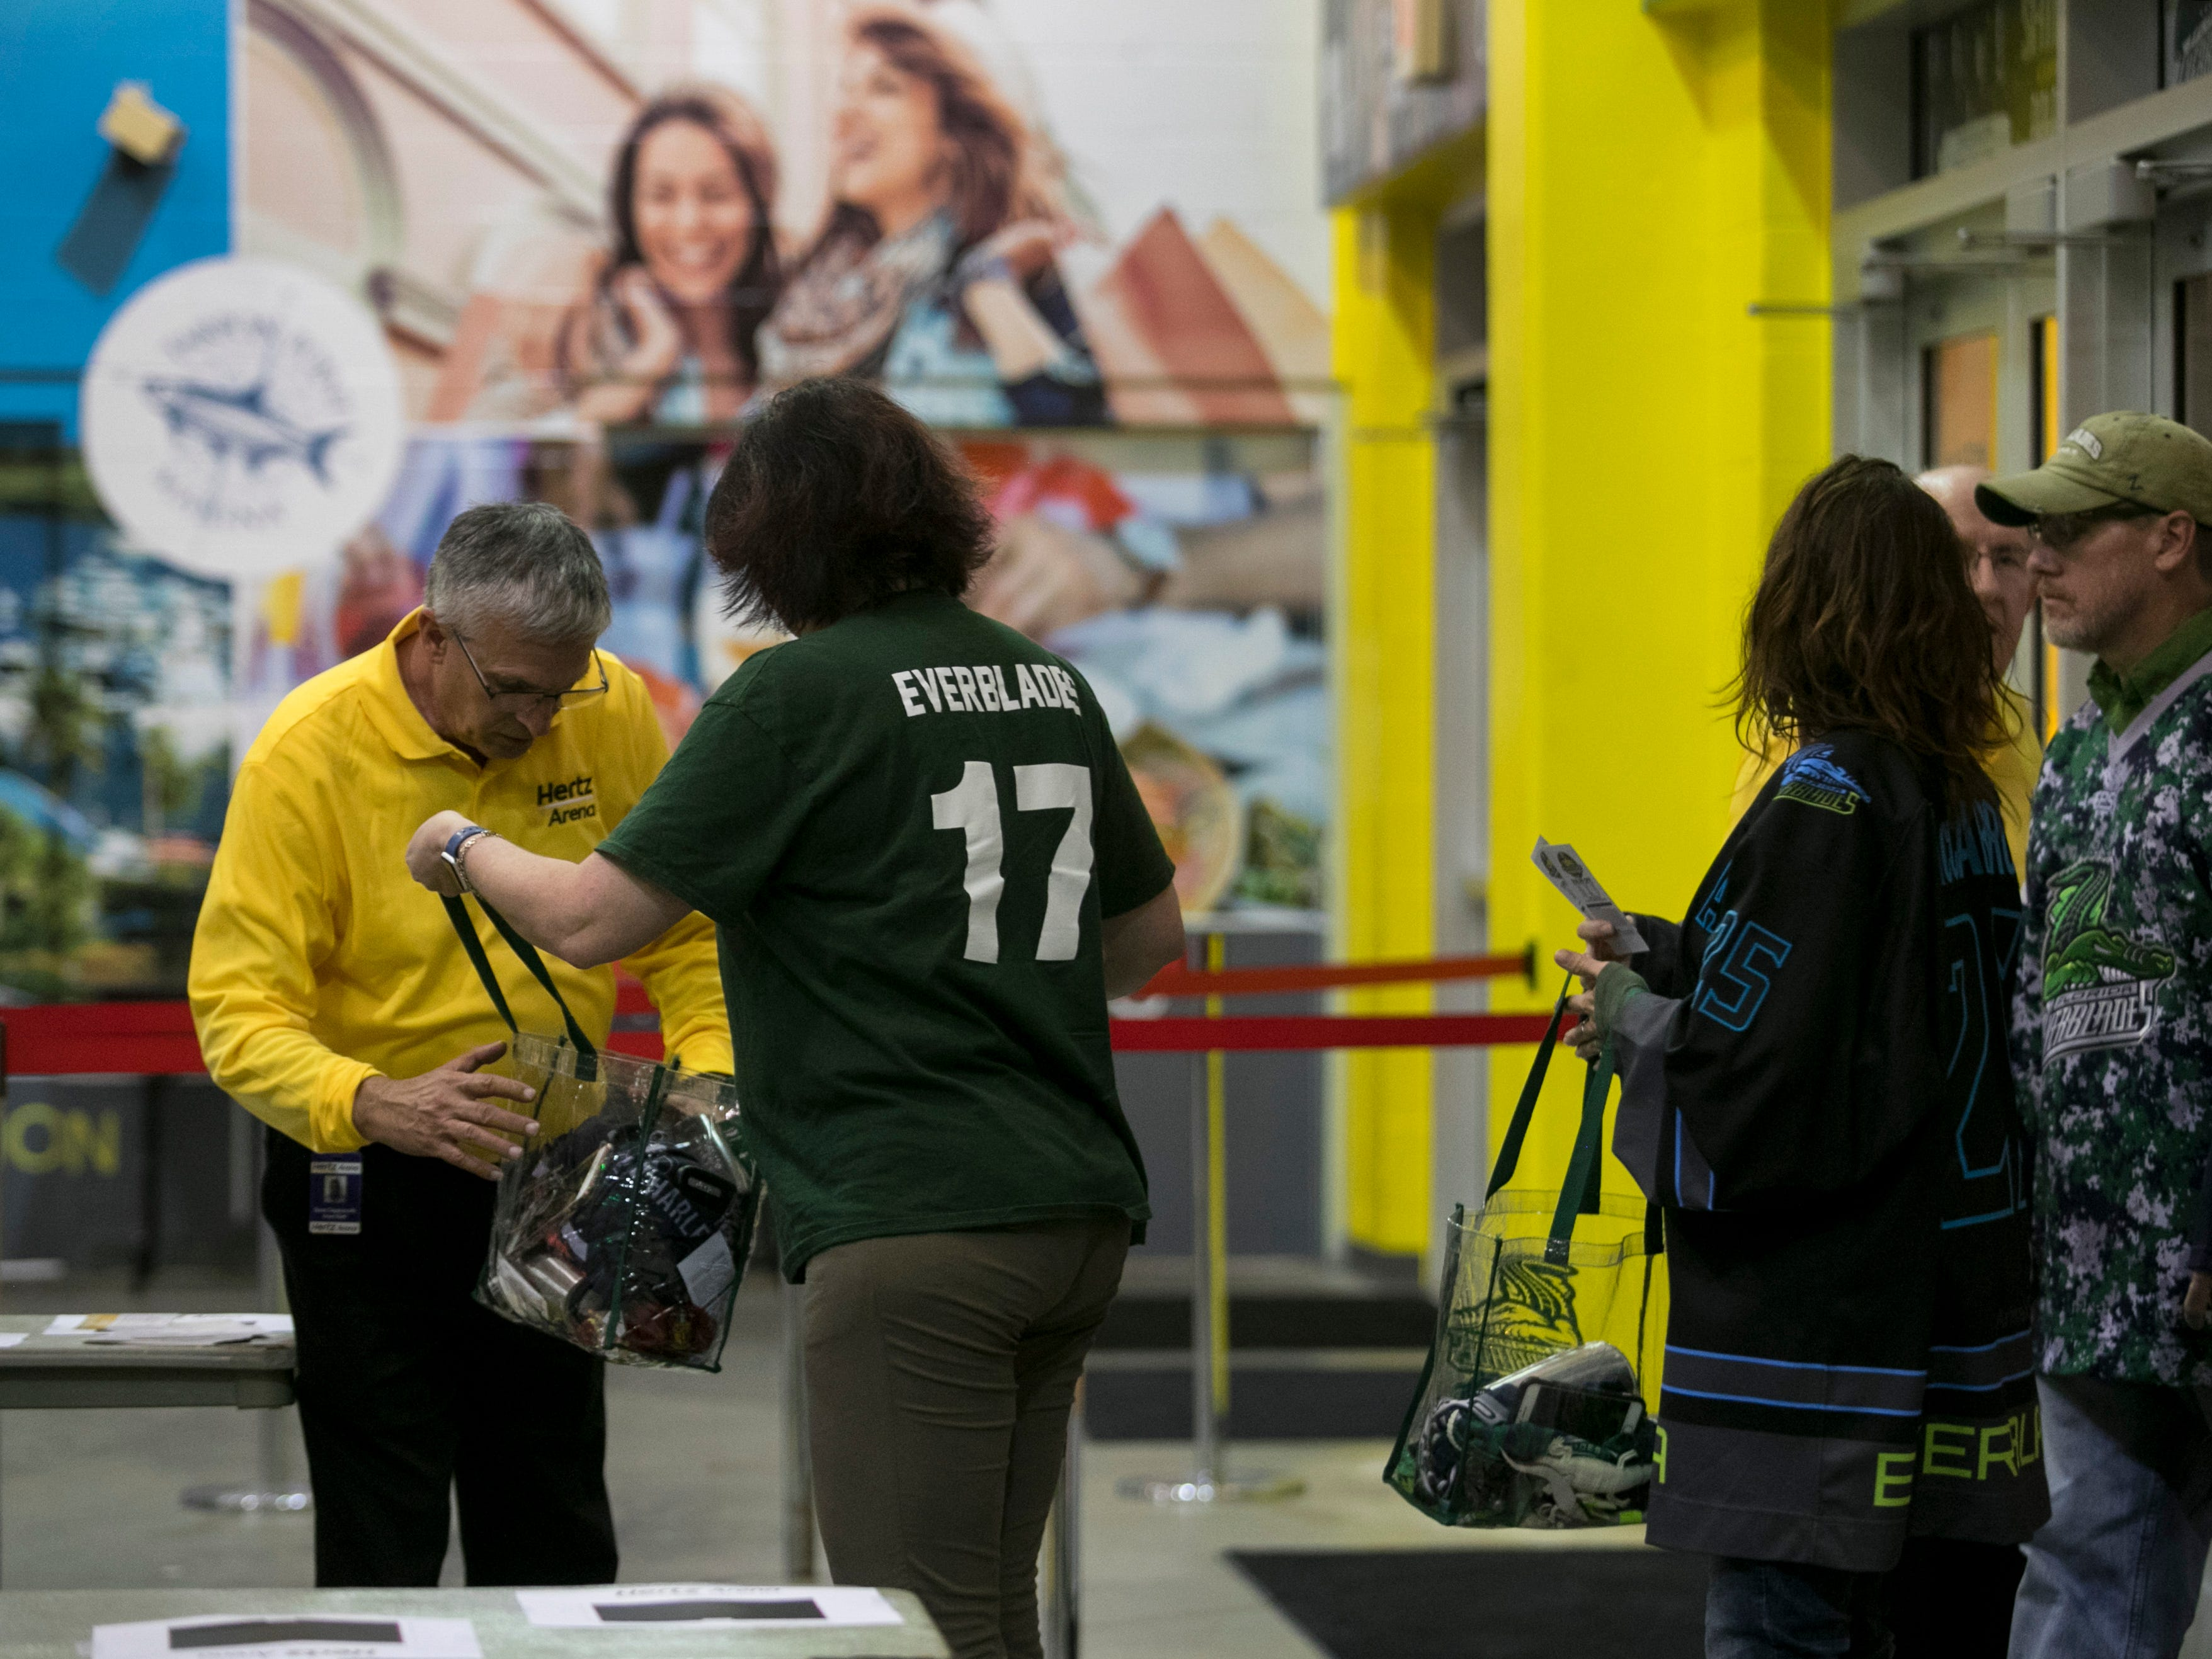 """Brigid Fahey has her bag inspected by a security guard at Hertz Arena in Estero on Wednesday, Jan. 2, 2019. A new policy went into effect Tuesday, banning large bags including purses and backpacks in the arena. Patrons can bring a clutch purse or a see-through bag. """"I'd rather be safe,"""" said Fahey about the new policy."""